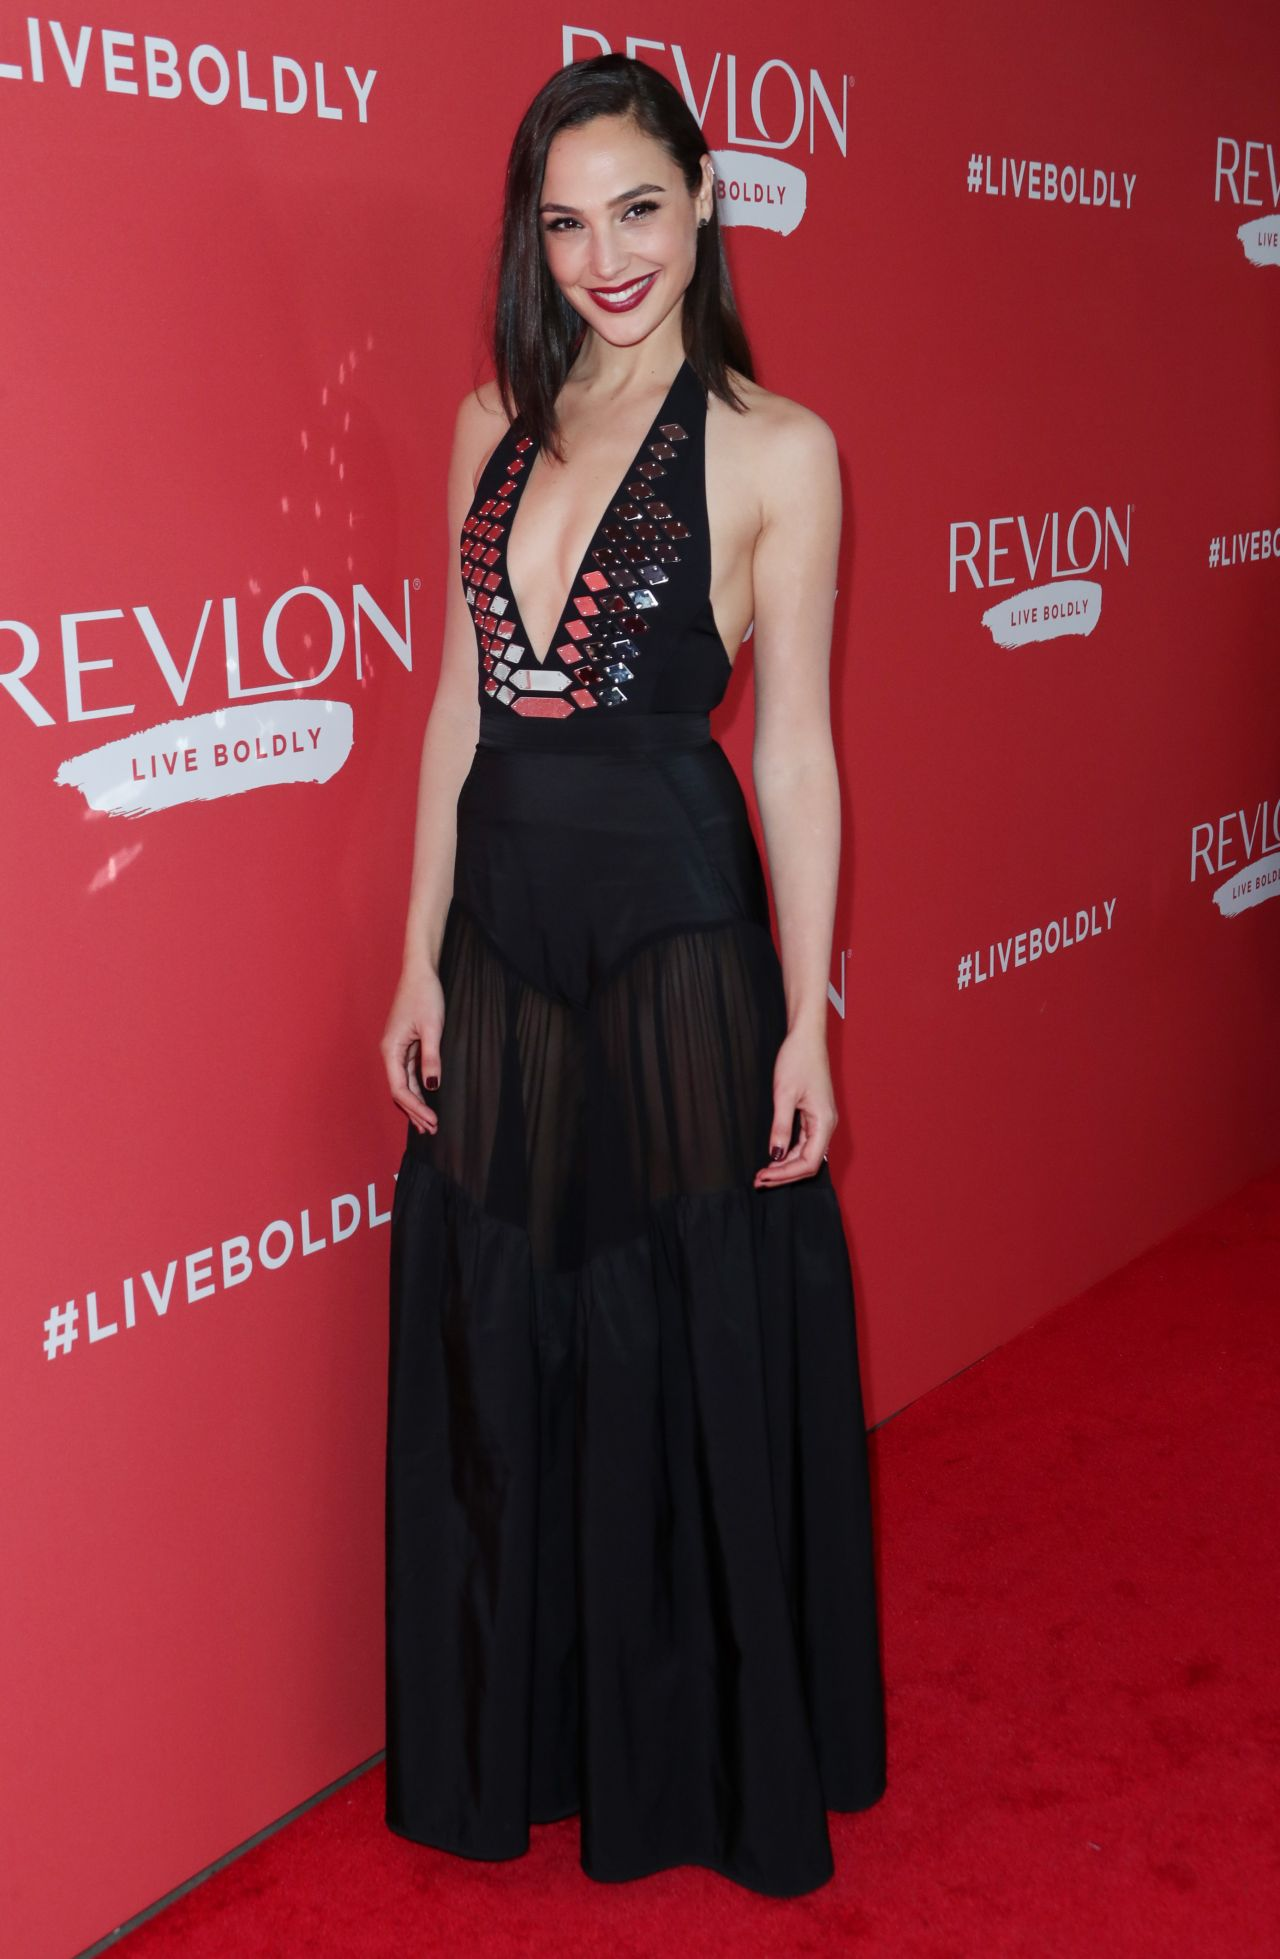 http://celebmafia.com/wp-content/uploads/2018/01/gal-gadot-revlon-s-live-boldly-campaign-launch-in-nyc-0.jpg